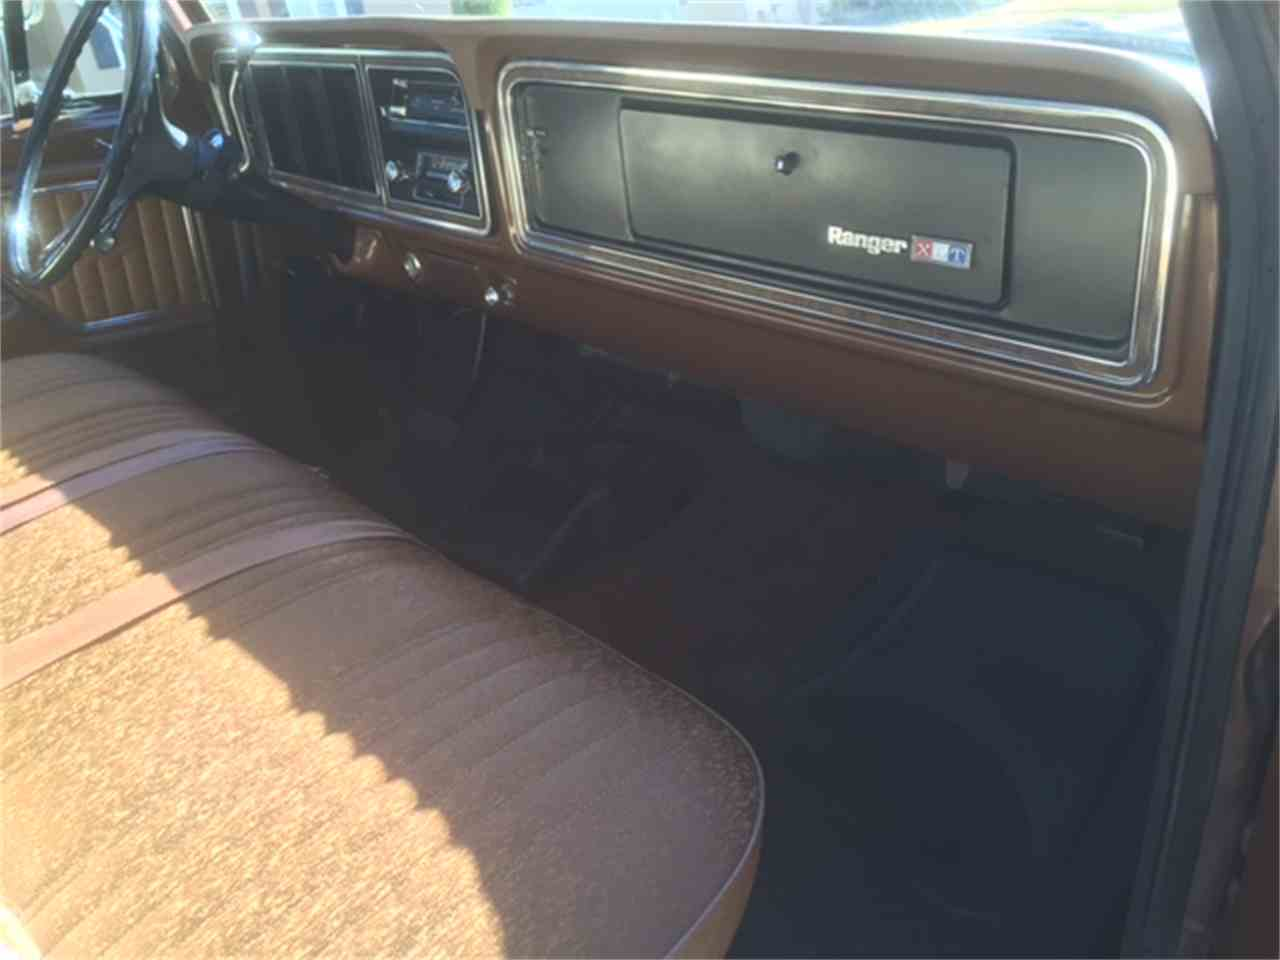 Large Picture of '74 Ford F350 located in California - $9,000.00 Offered by a Private Seller - IWD7